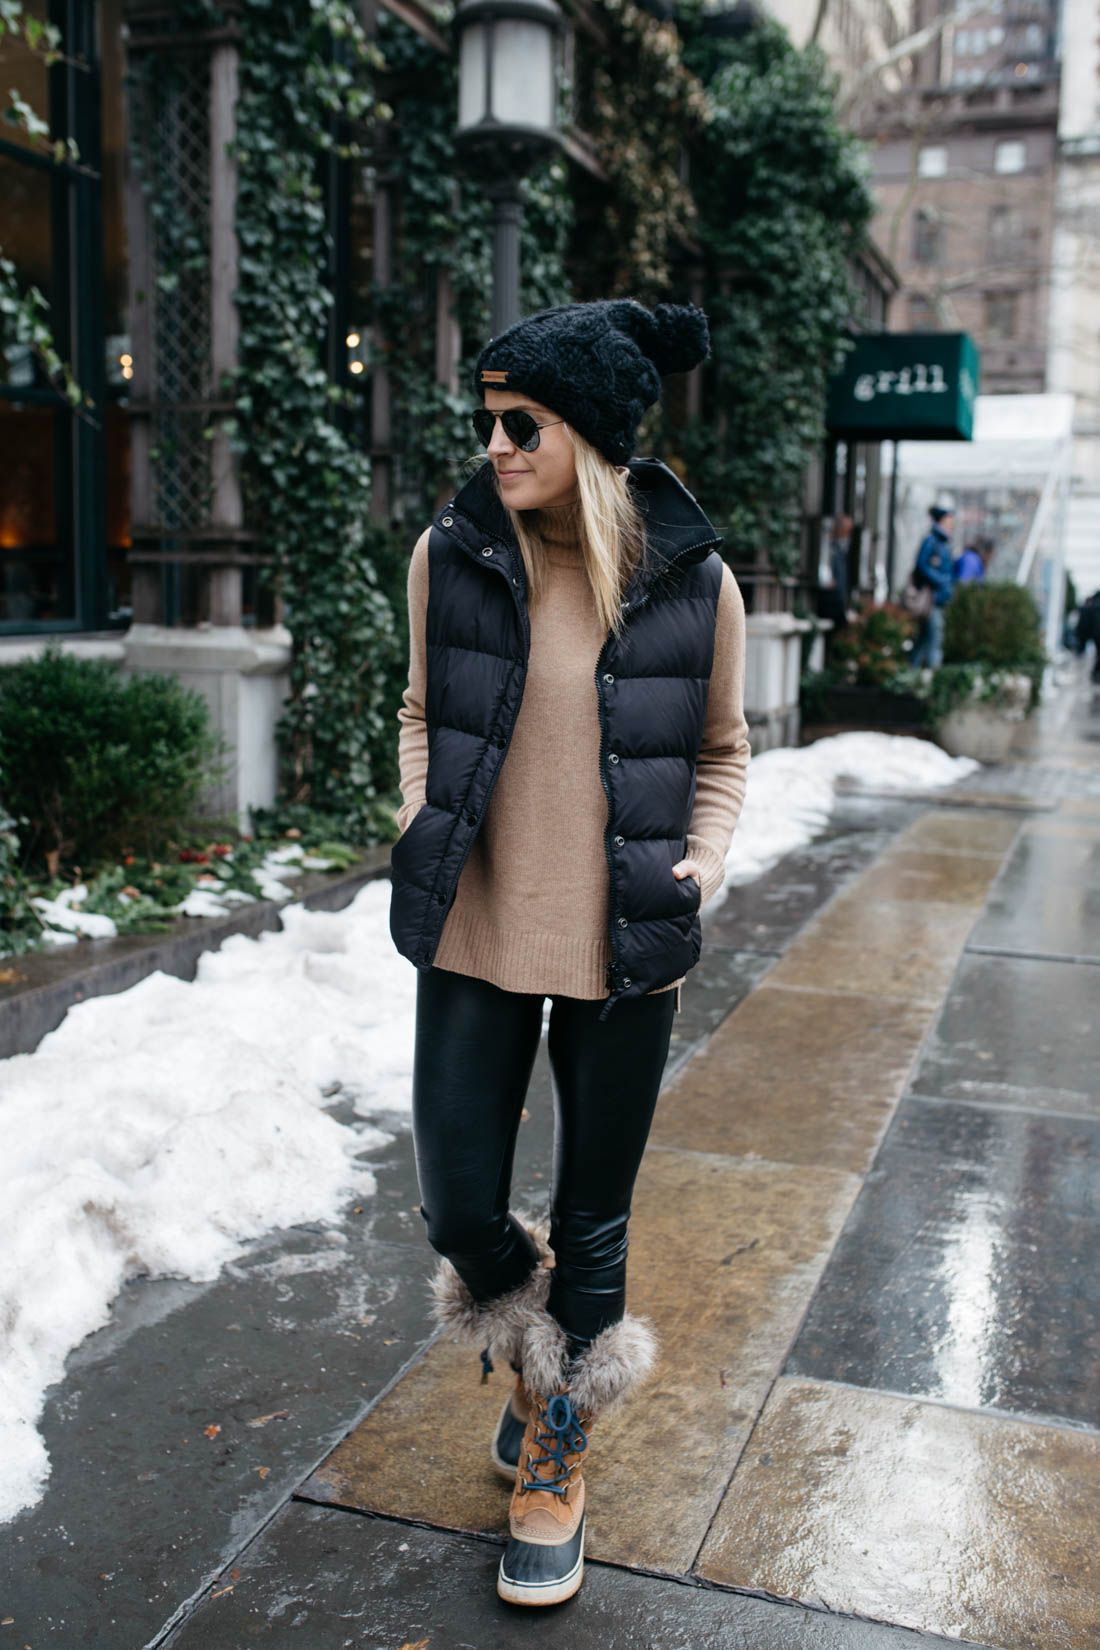 SOREL BOOTS | Winter outfits women, Fashion trends winter